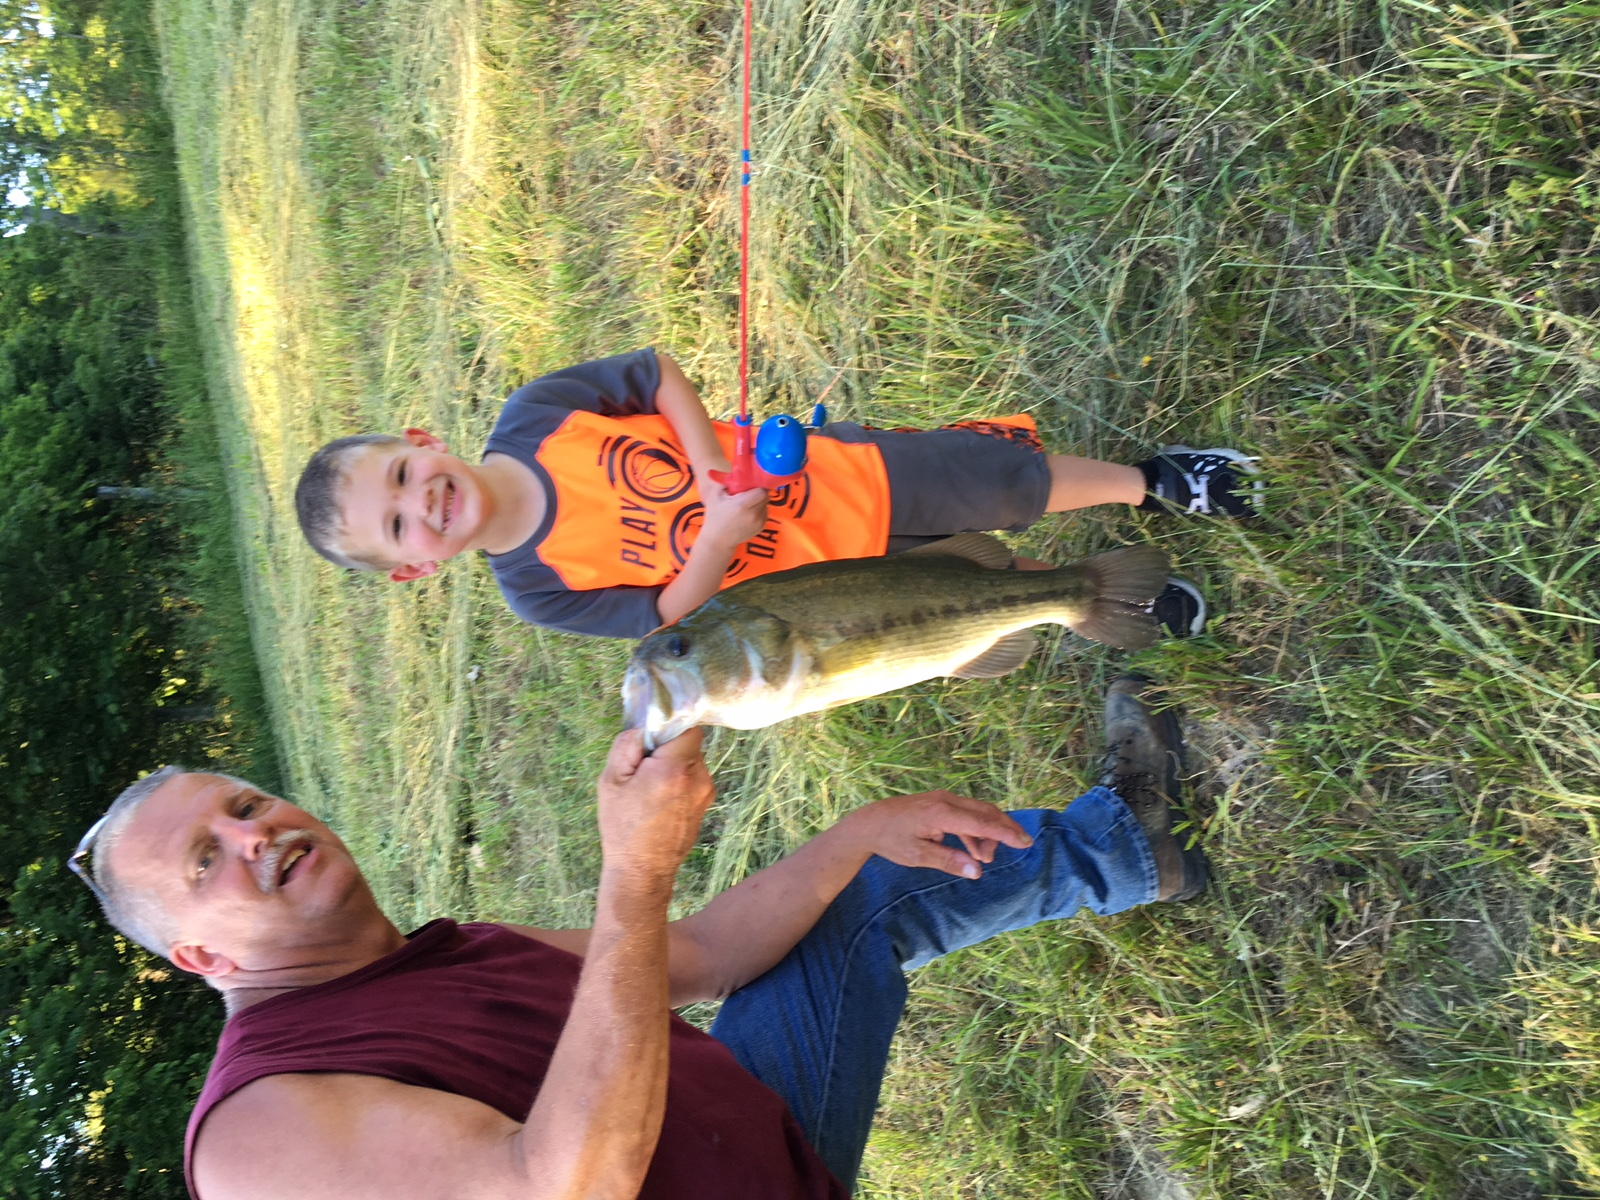 Braden draper caught this 5lb bass on his spider man for Spiderman fishing pole